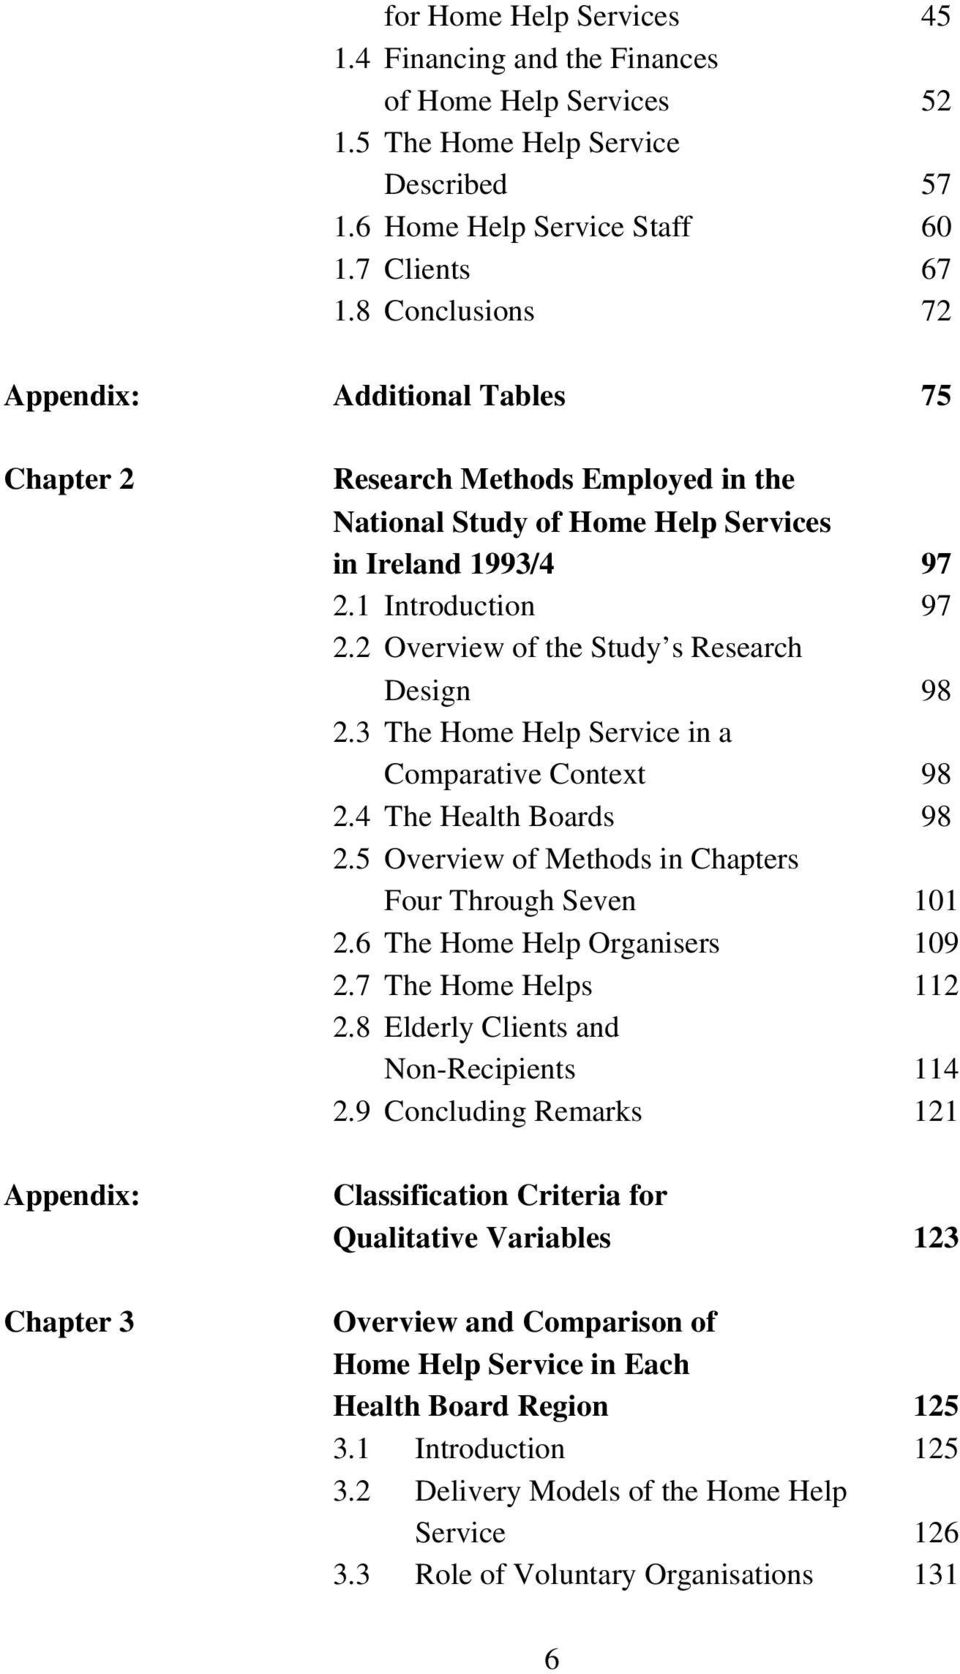 2 Overview of the Study s Research Design 98 2.3 The Home Help Service in a Comparative Context 98 2.4 The Health Boards 98 2.5 Overview of Methods in Chapters Four Through Seven 101 2.